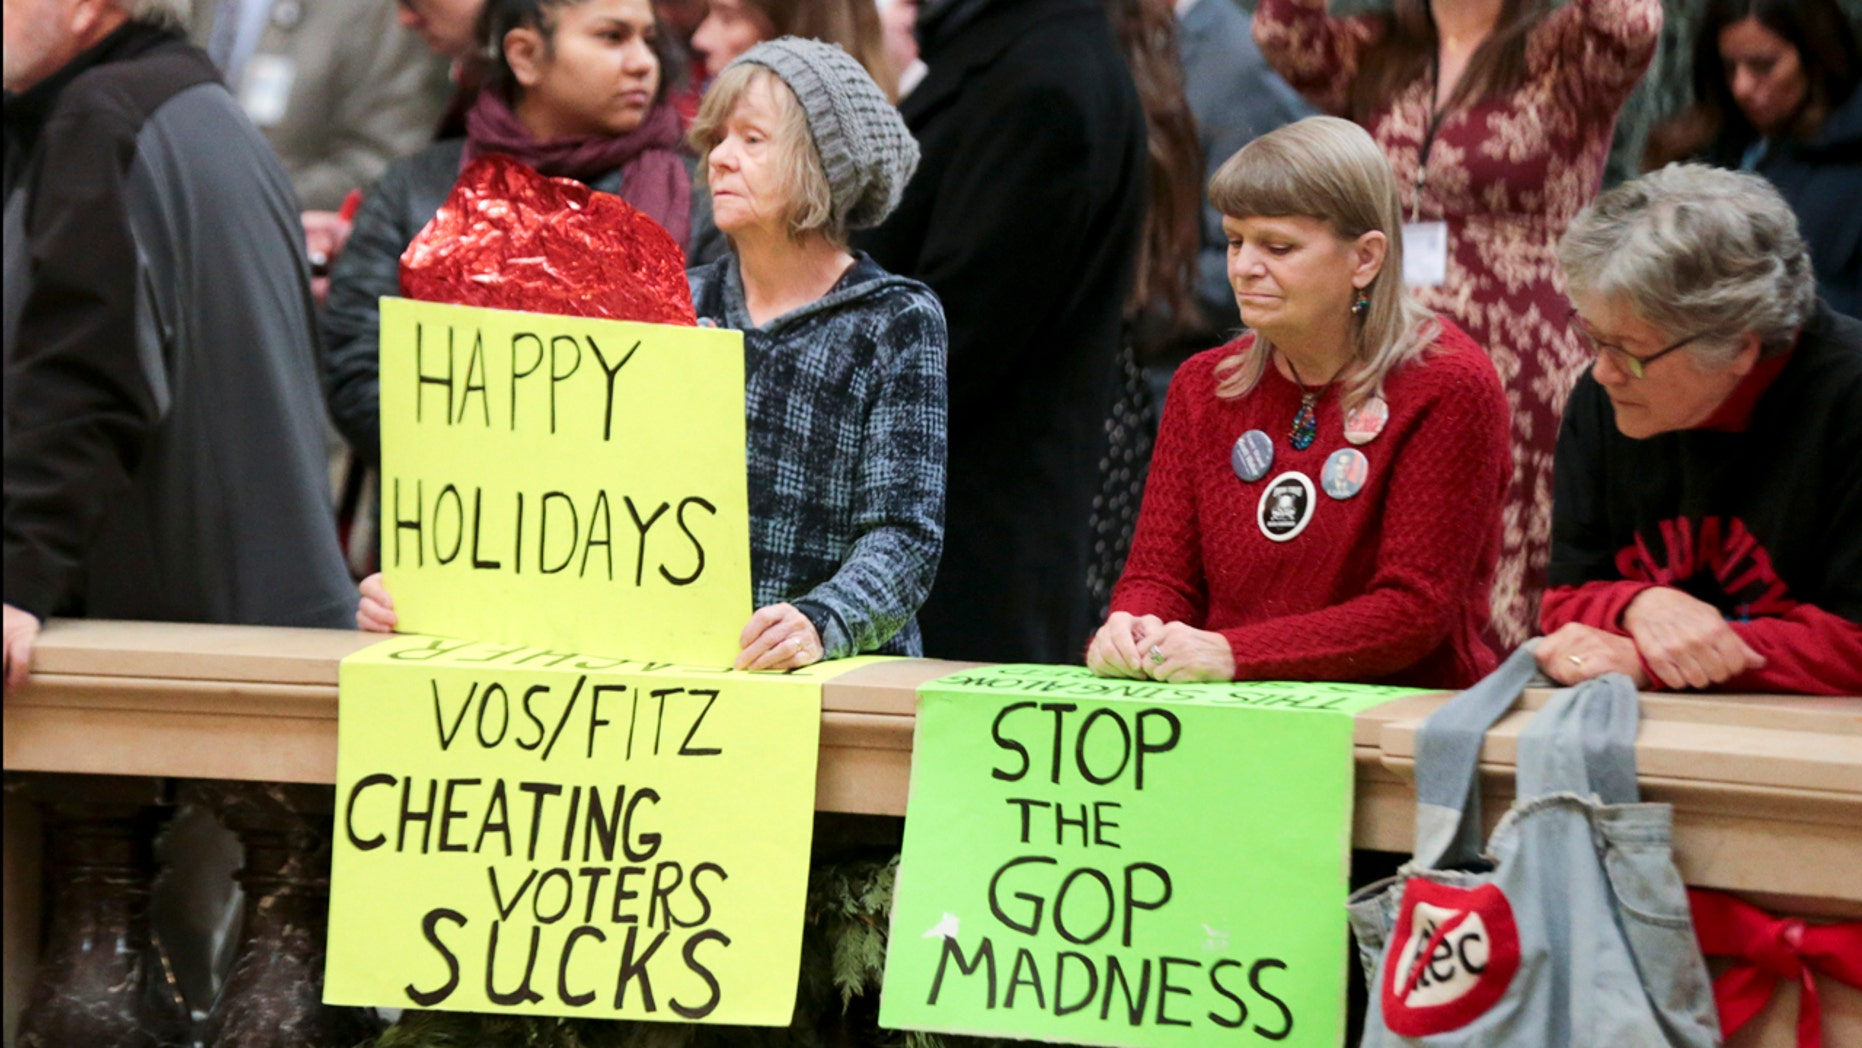 Protesters Peppi Elder, left, and Christine Taylor holding up signs during the state Christmas Tree lighting ceremony in Madison, Wisconsin.